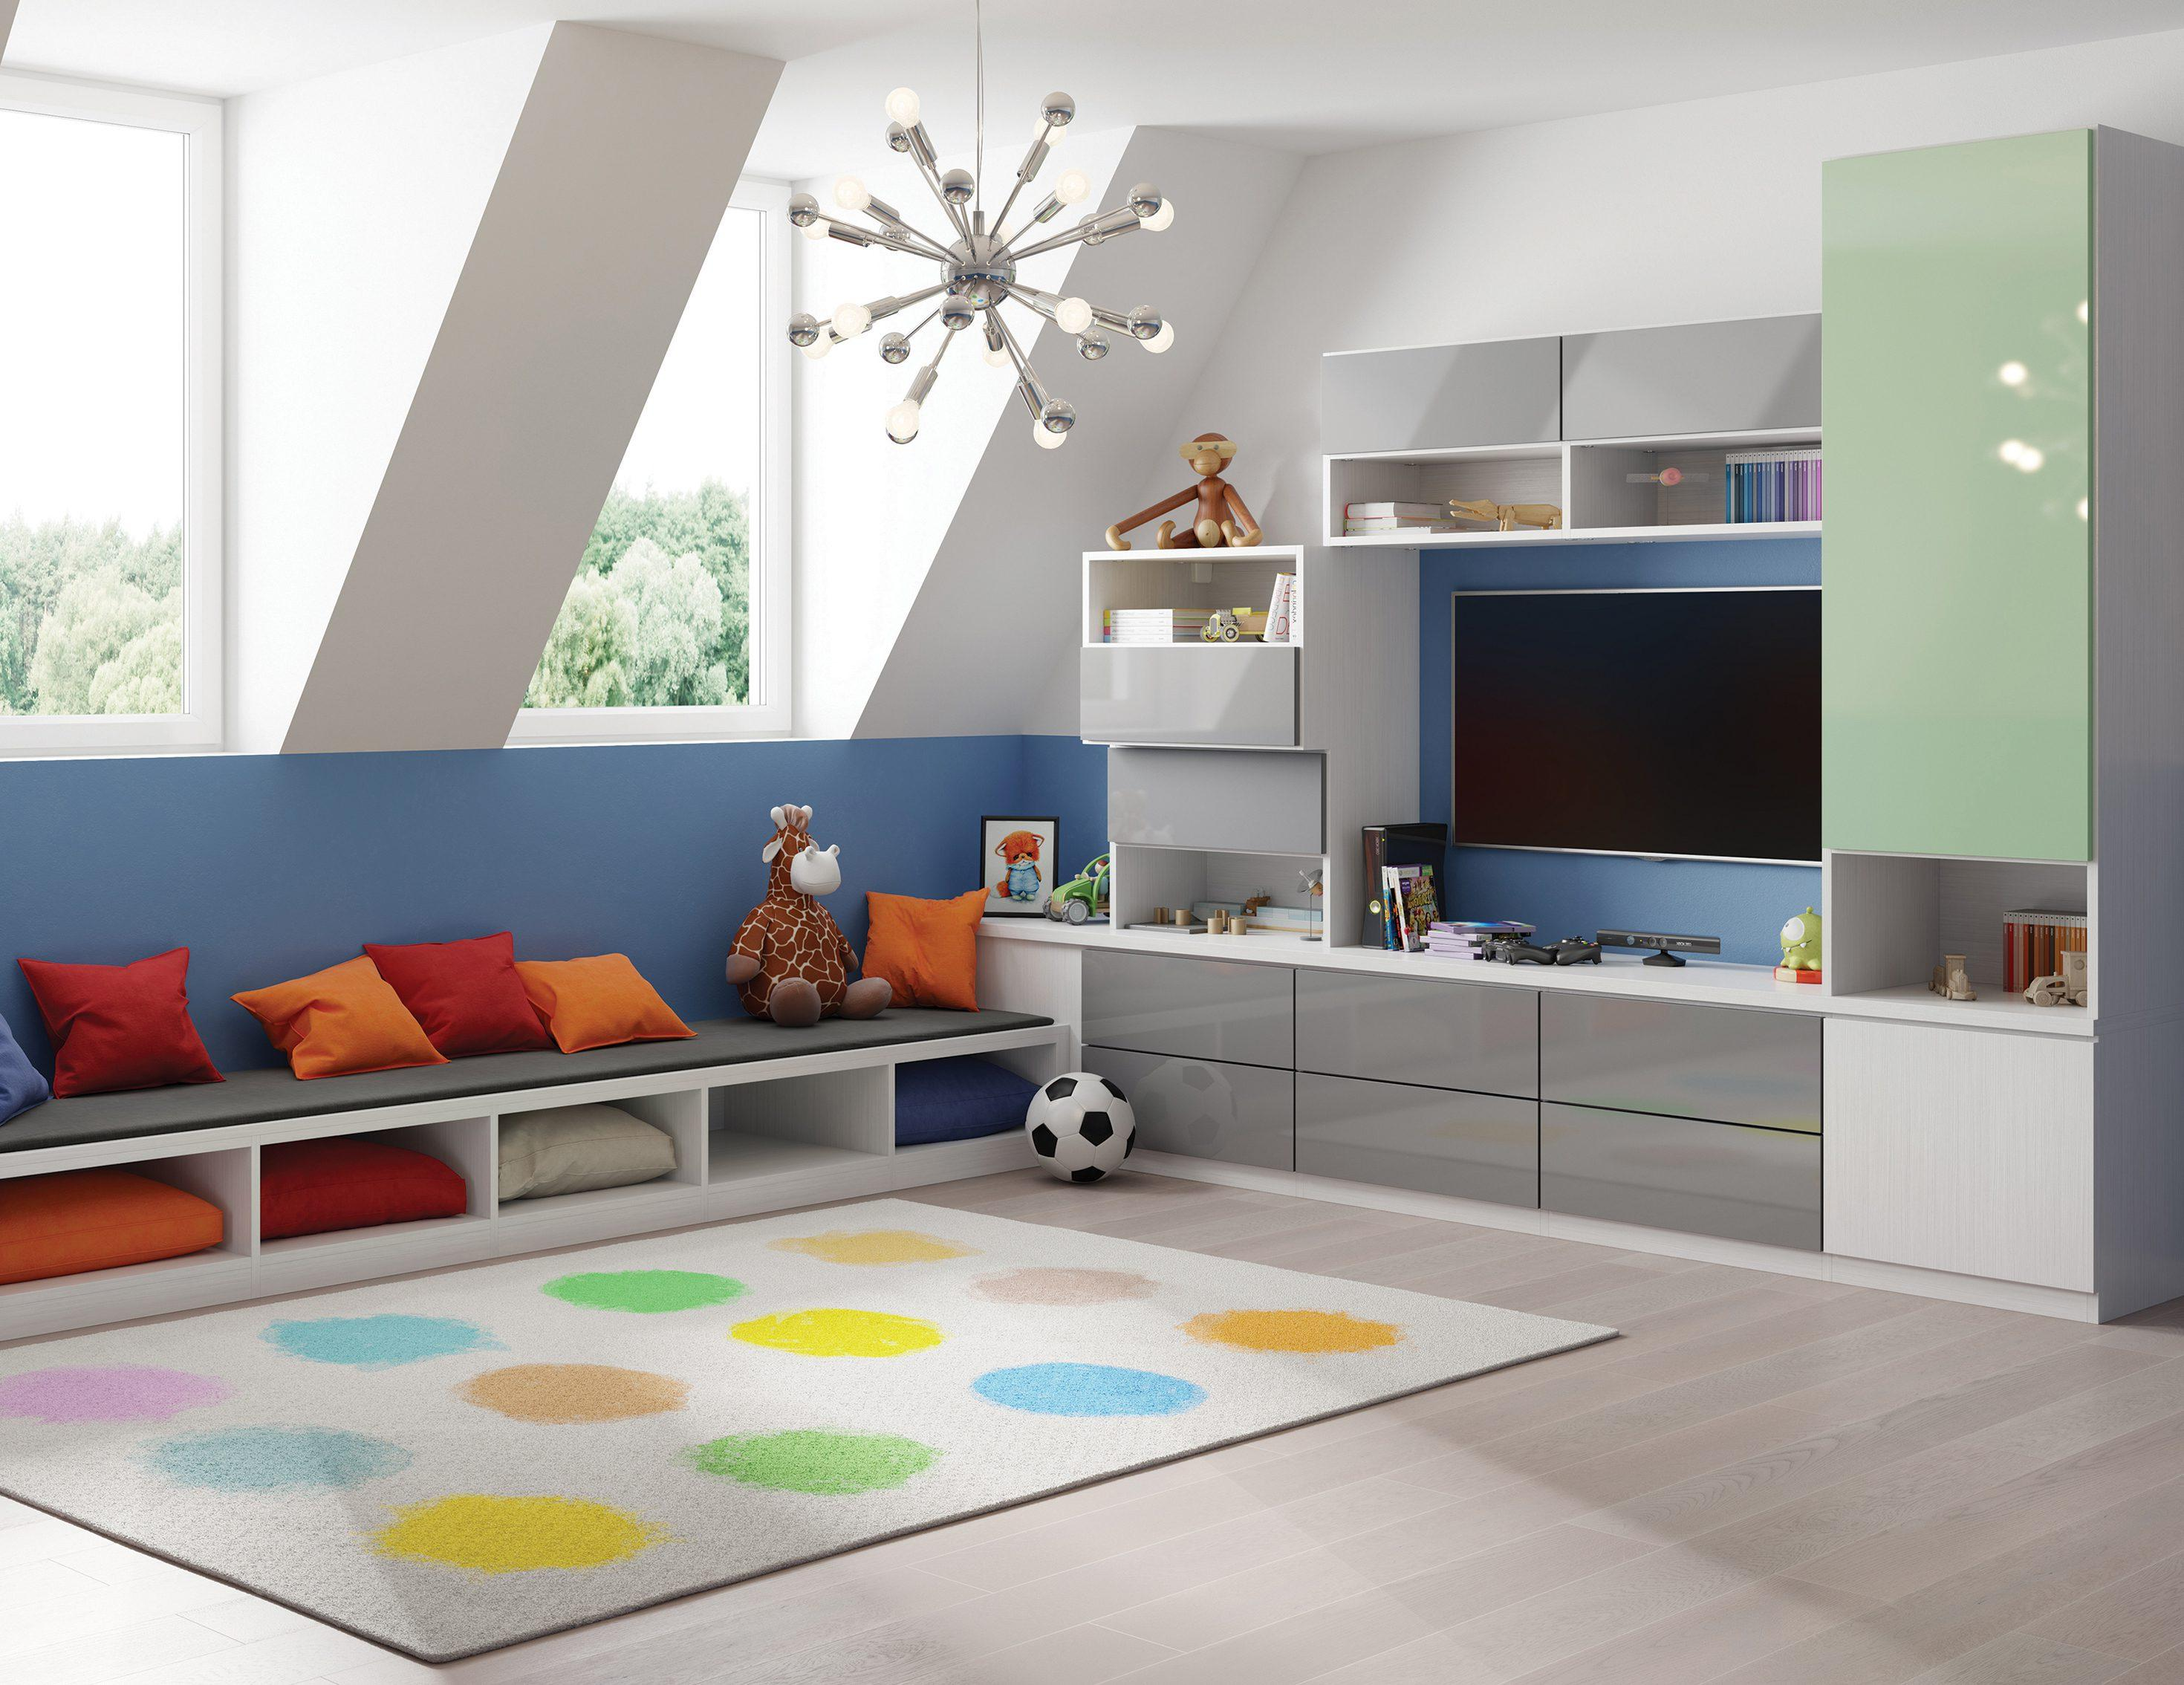 Design Playroom Storage playroom storage kids toy ideas by california cheery attic playroom